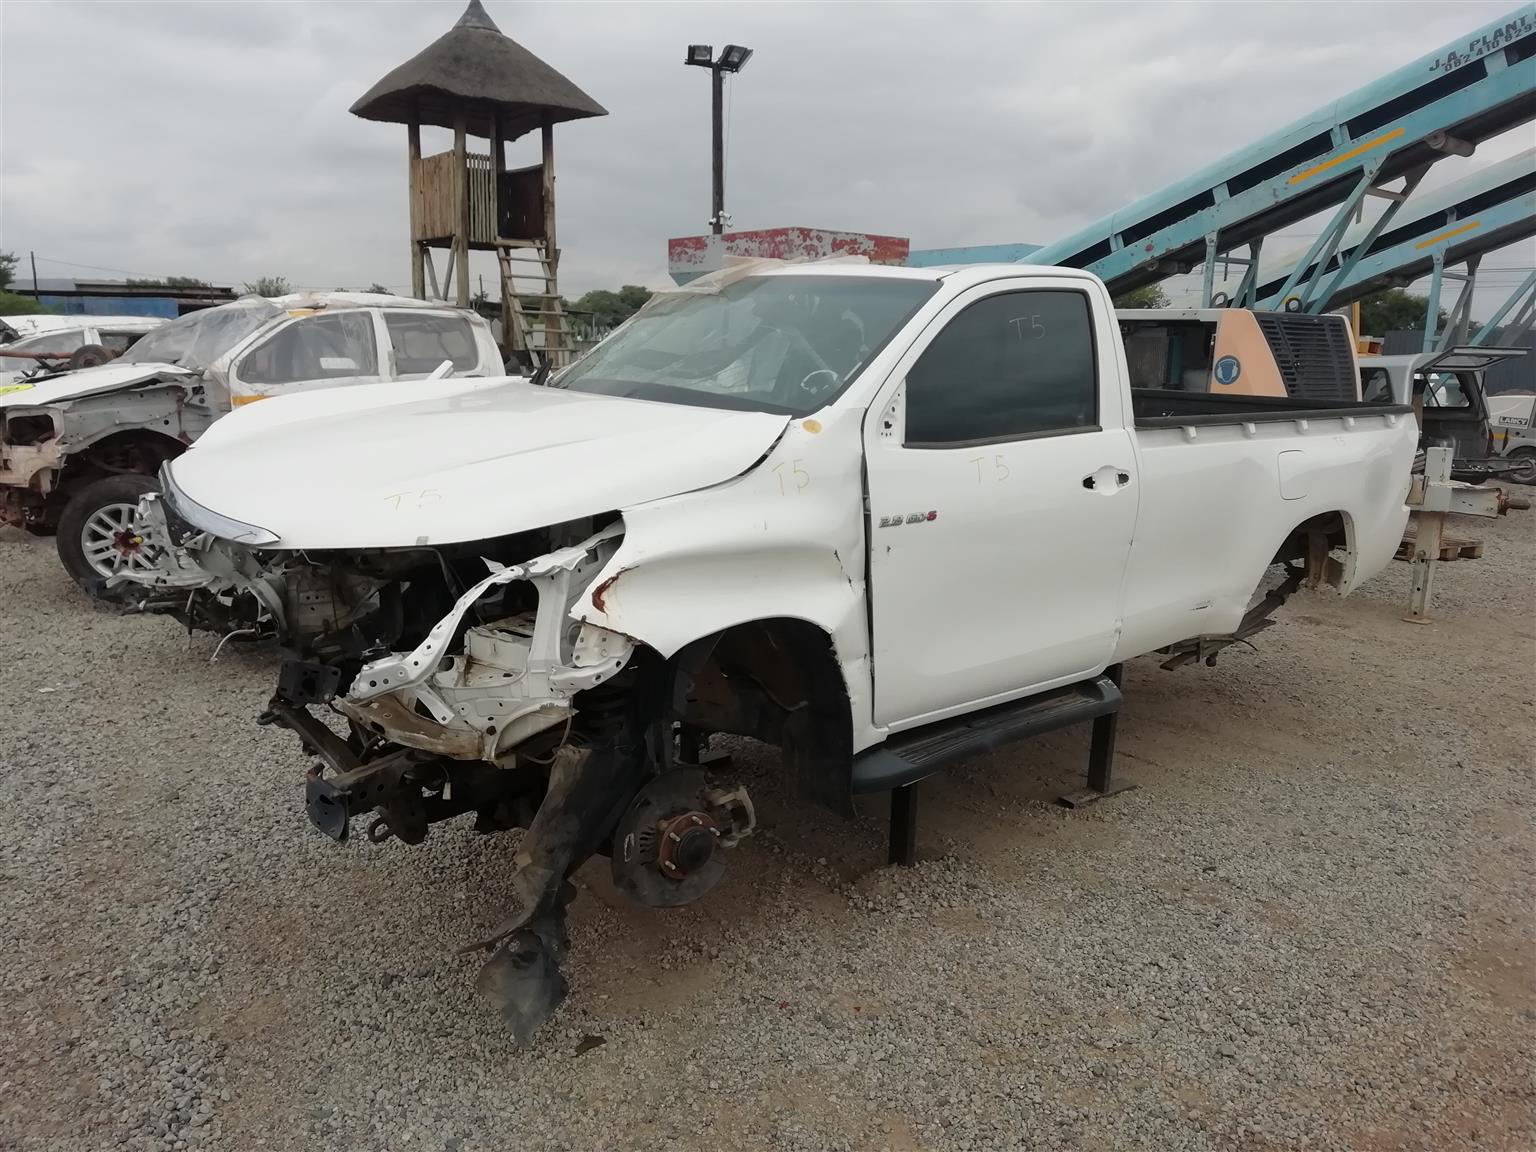 Hilux Gd6 2.8 4x4 Stripping For Spares